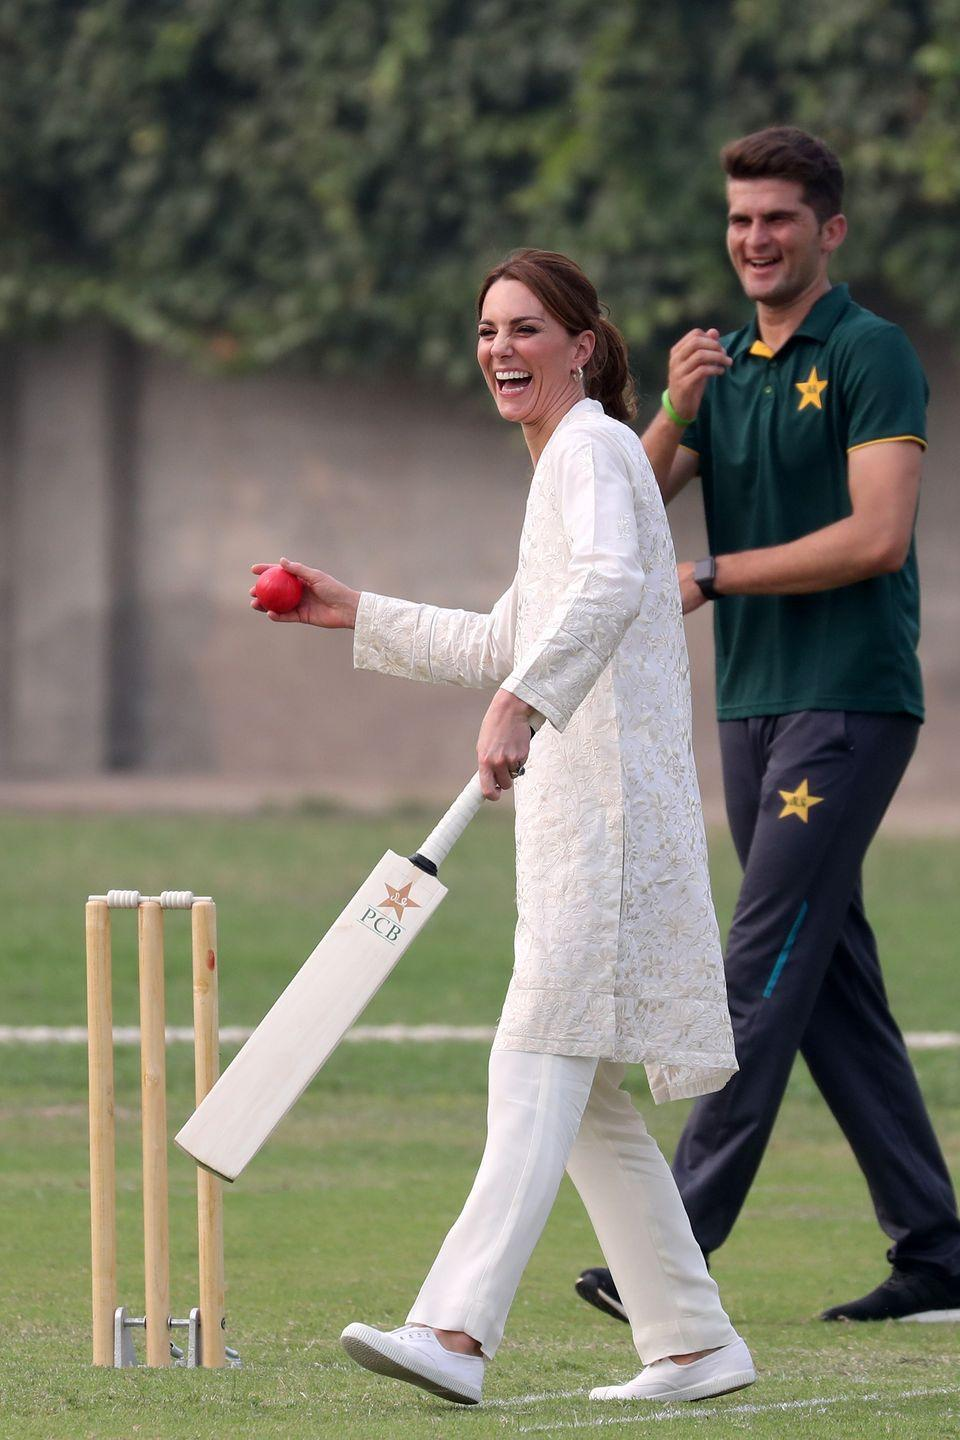 """<p>On <a href=""""https://www.townandcountrymag.com/society/tradition/g29431002/kate-middleton-prince-william-pakistan-royal-tour-photos-2019/"""" rel=""""nofollow noopener"""" target=""""_blank"""" data-ylk=""""slk:a 2019 trip to Pakistan"""" class=""""link rapid-noclick-resp"""">a 2019 trip to Pakistan</a>, Kate visited the National Cricket Academy and tried out the popular sport. </p>"""